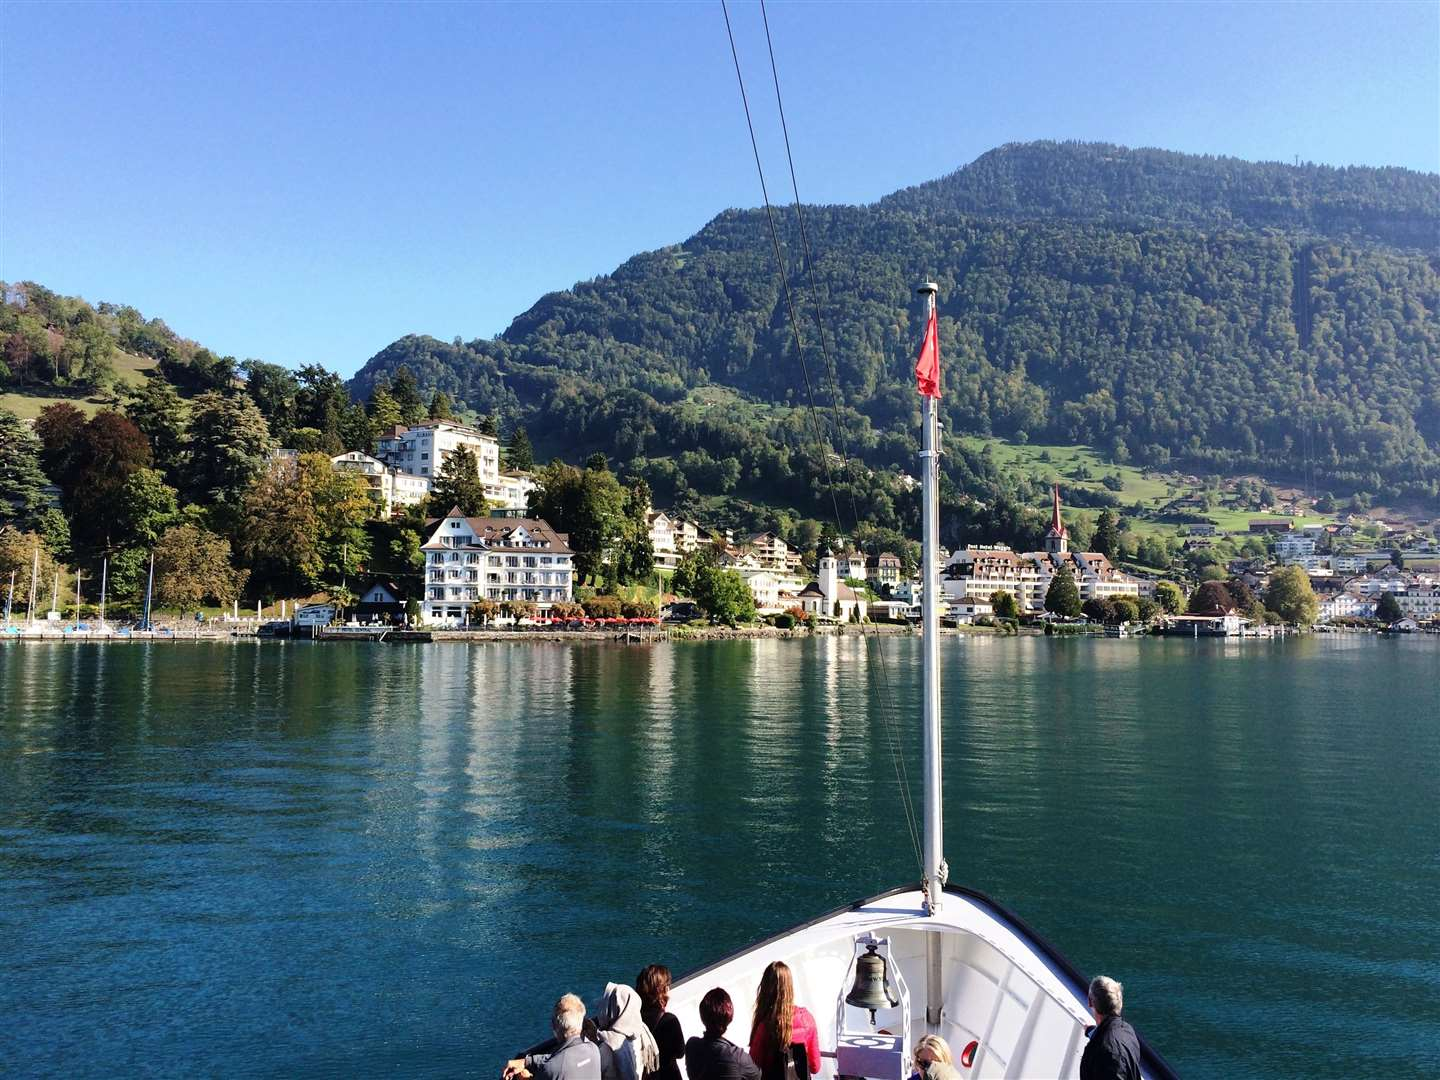 Approaching Weggis on Lake Lucerne.